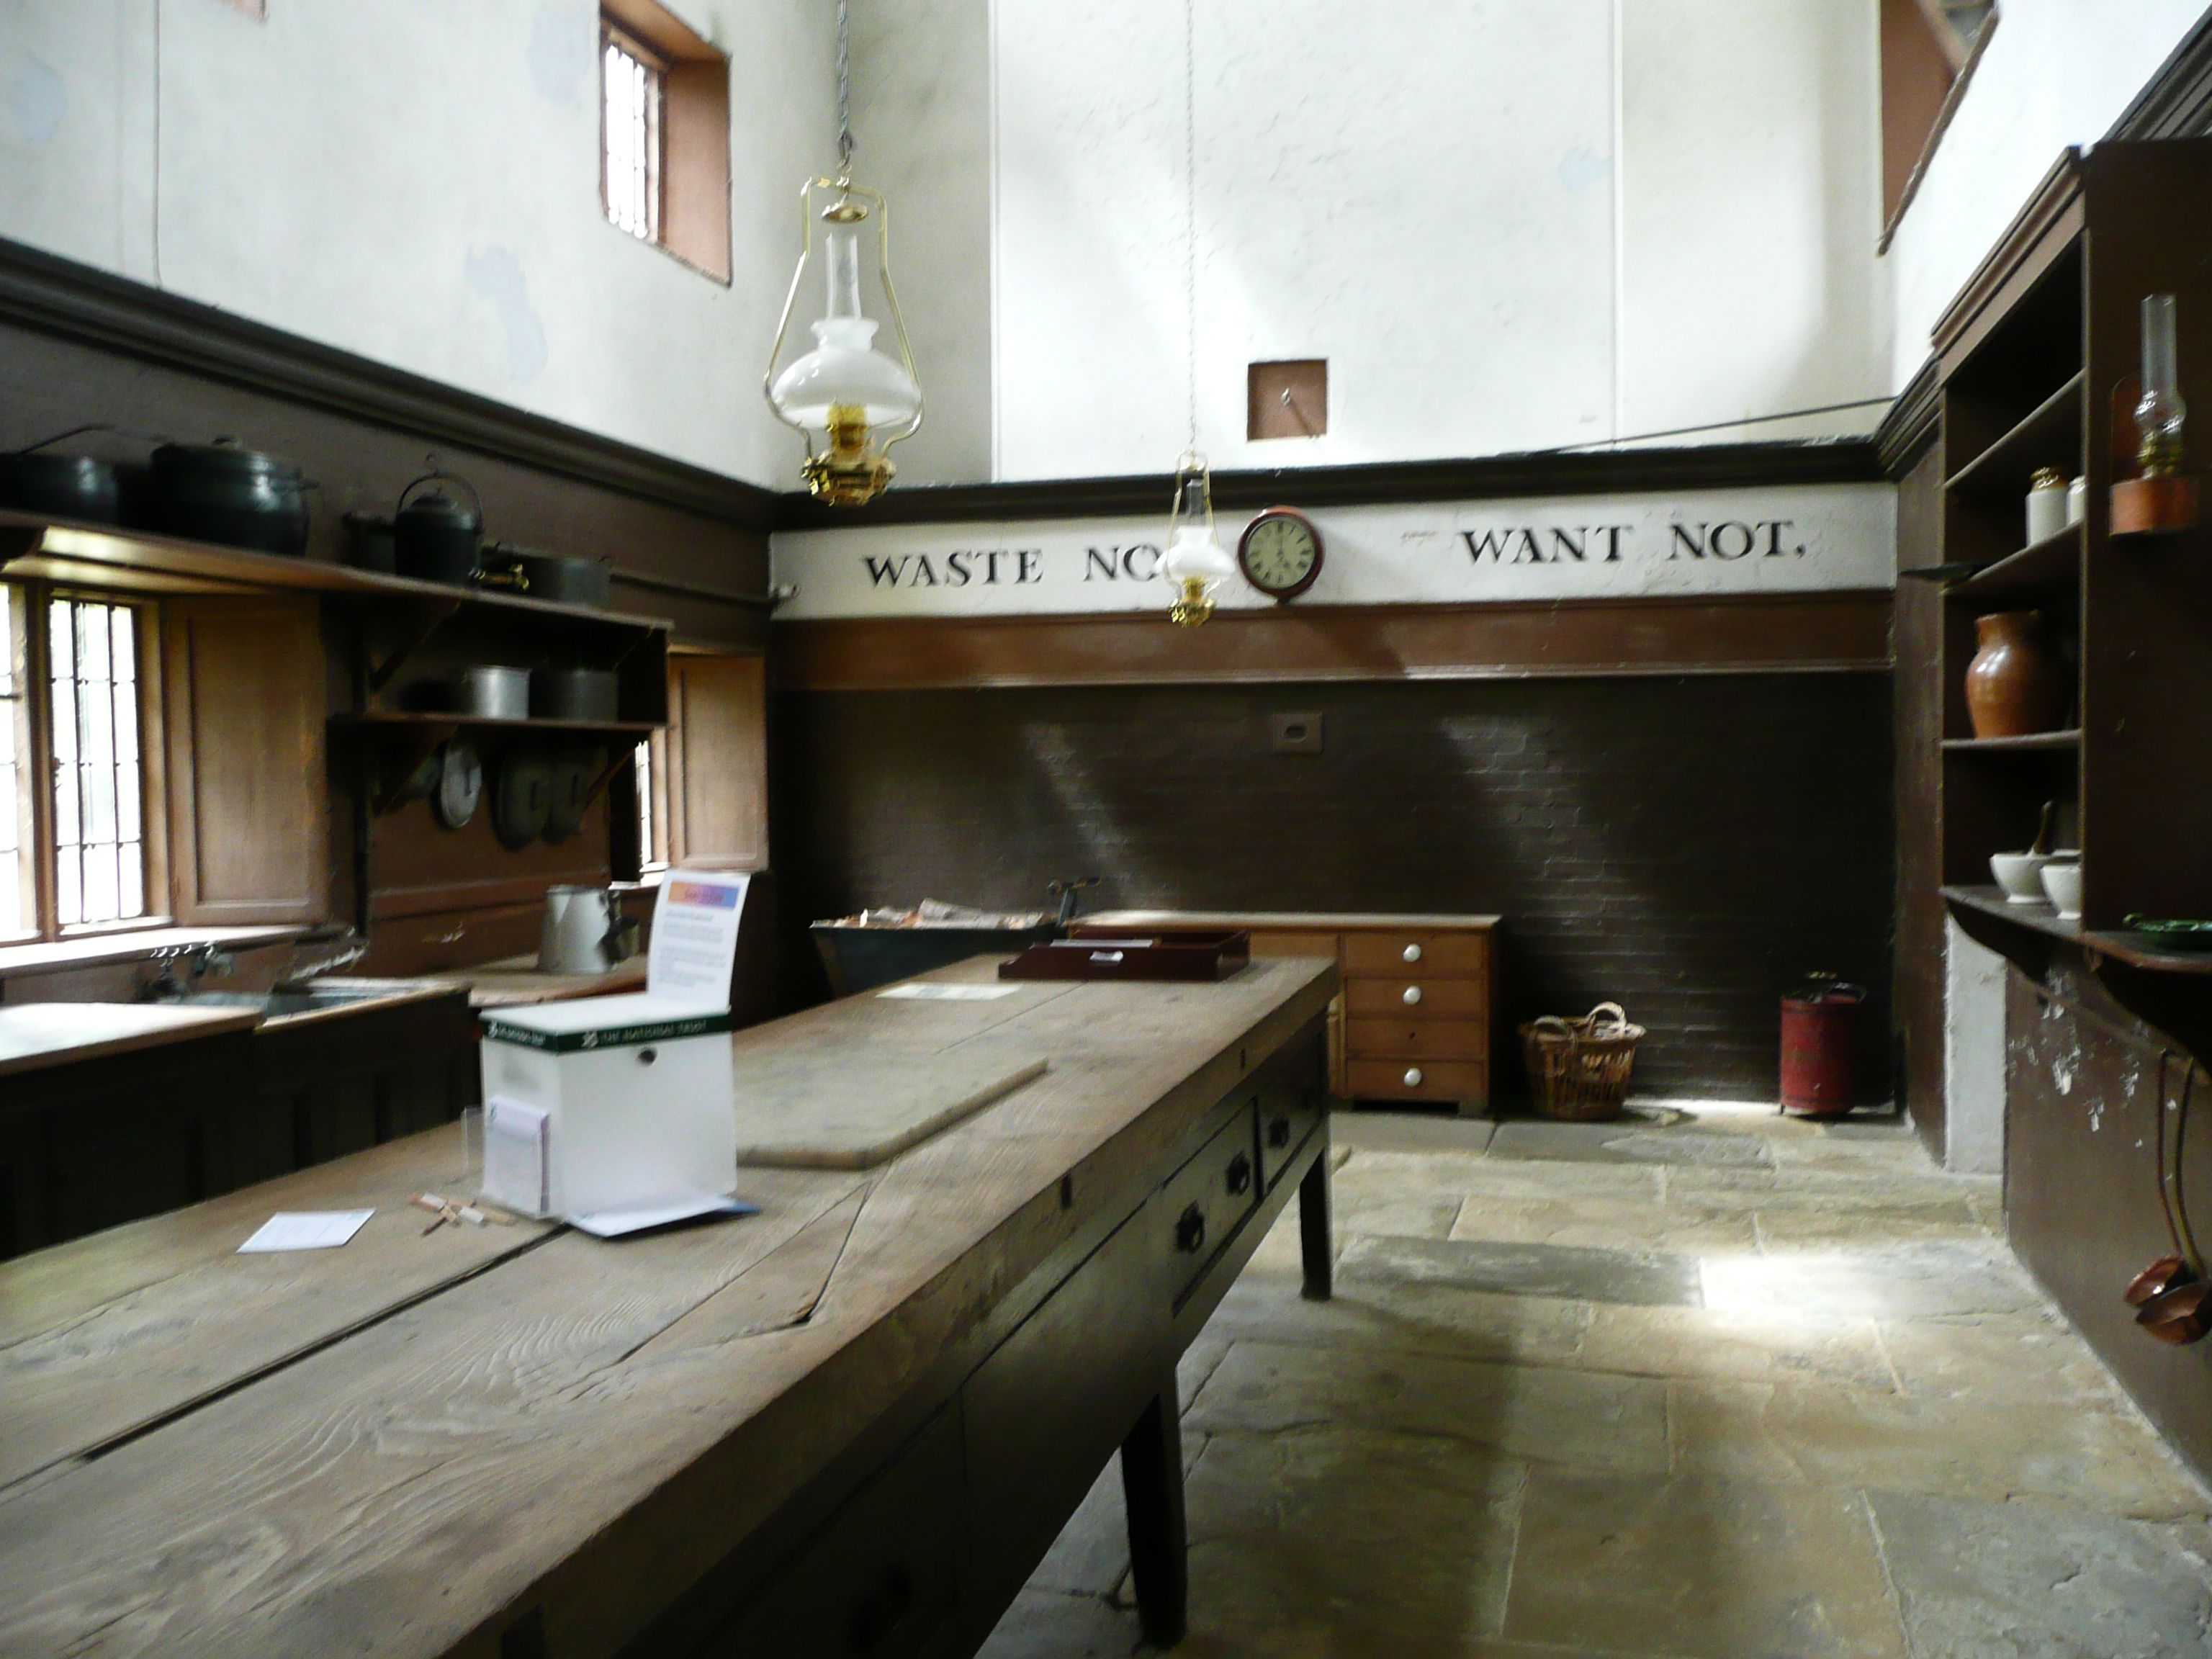 Farmhouse Kitchen Tables Uk The Old Kitchen At Belton House Lincolnshire Uk Showing An